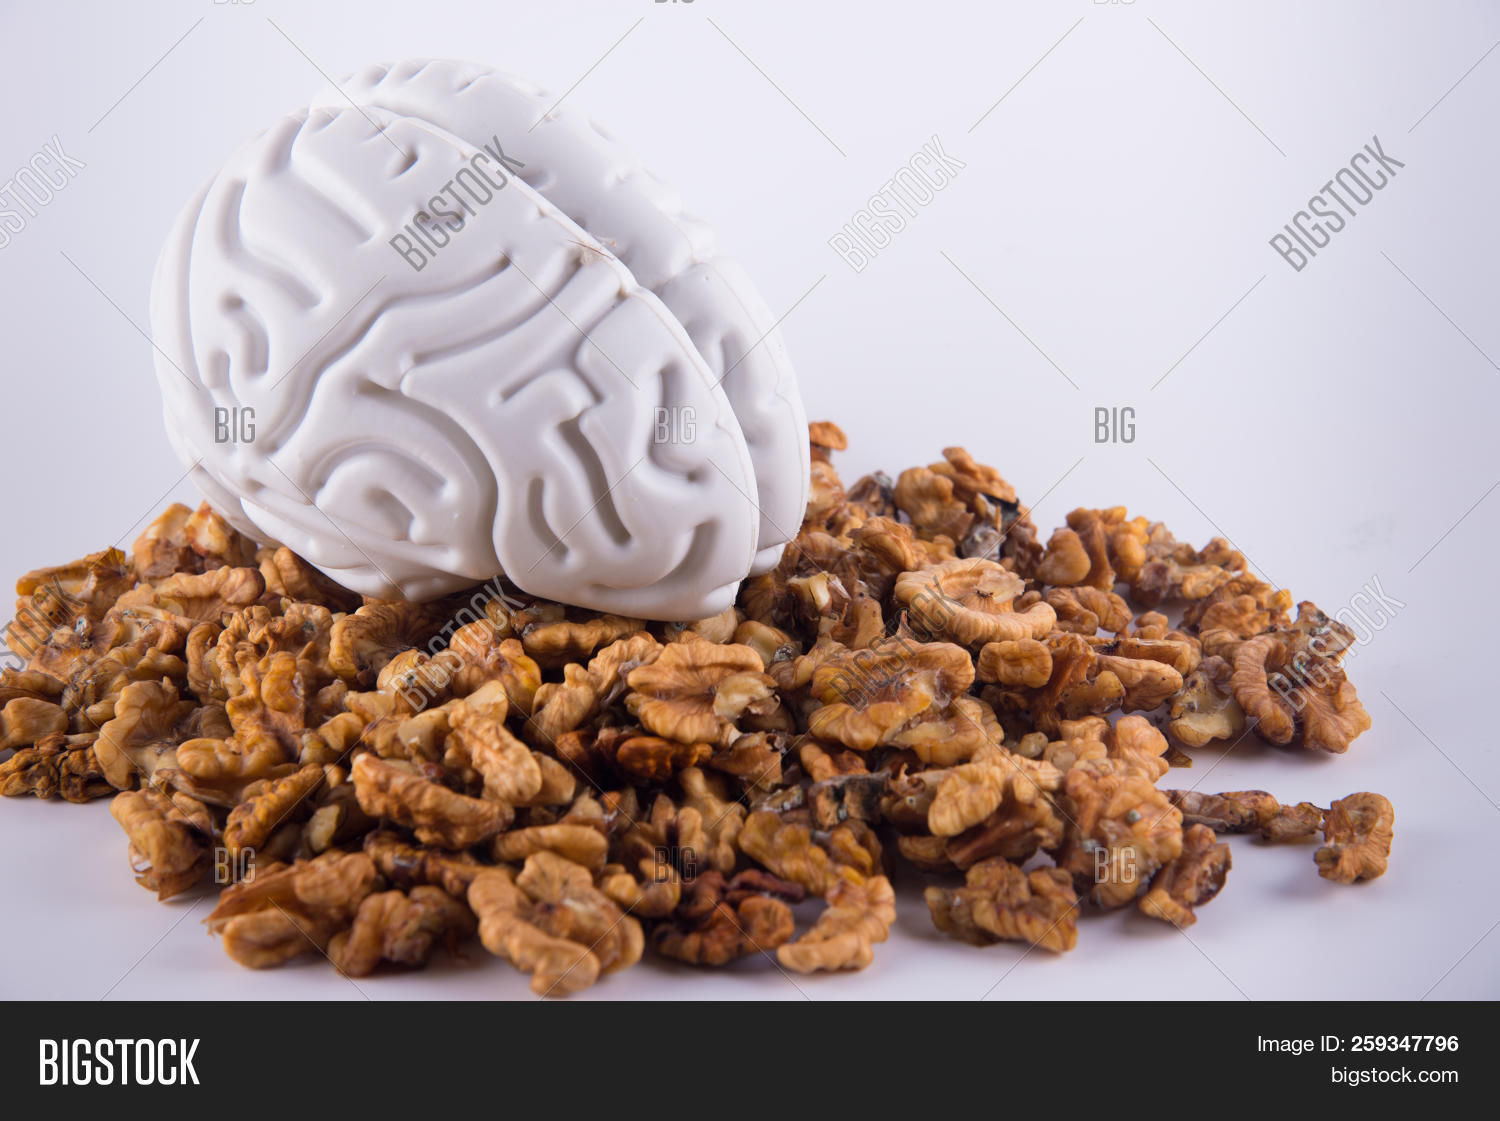 background,brain,brown,close,culinary,delicious,diet,eat,flavor,flavour,food,group,half,healthy,heap,human,husks,ingredient,kernel,mold,natural,nature,nobody,nut,nutty,object,organic,pile,plastic,seed,snack,tasty,up,variation,various,walnut,white,yellow